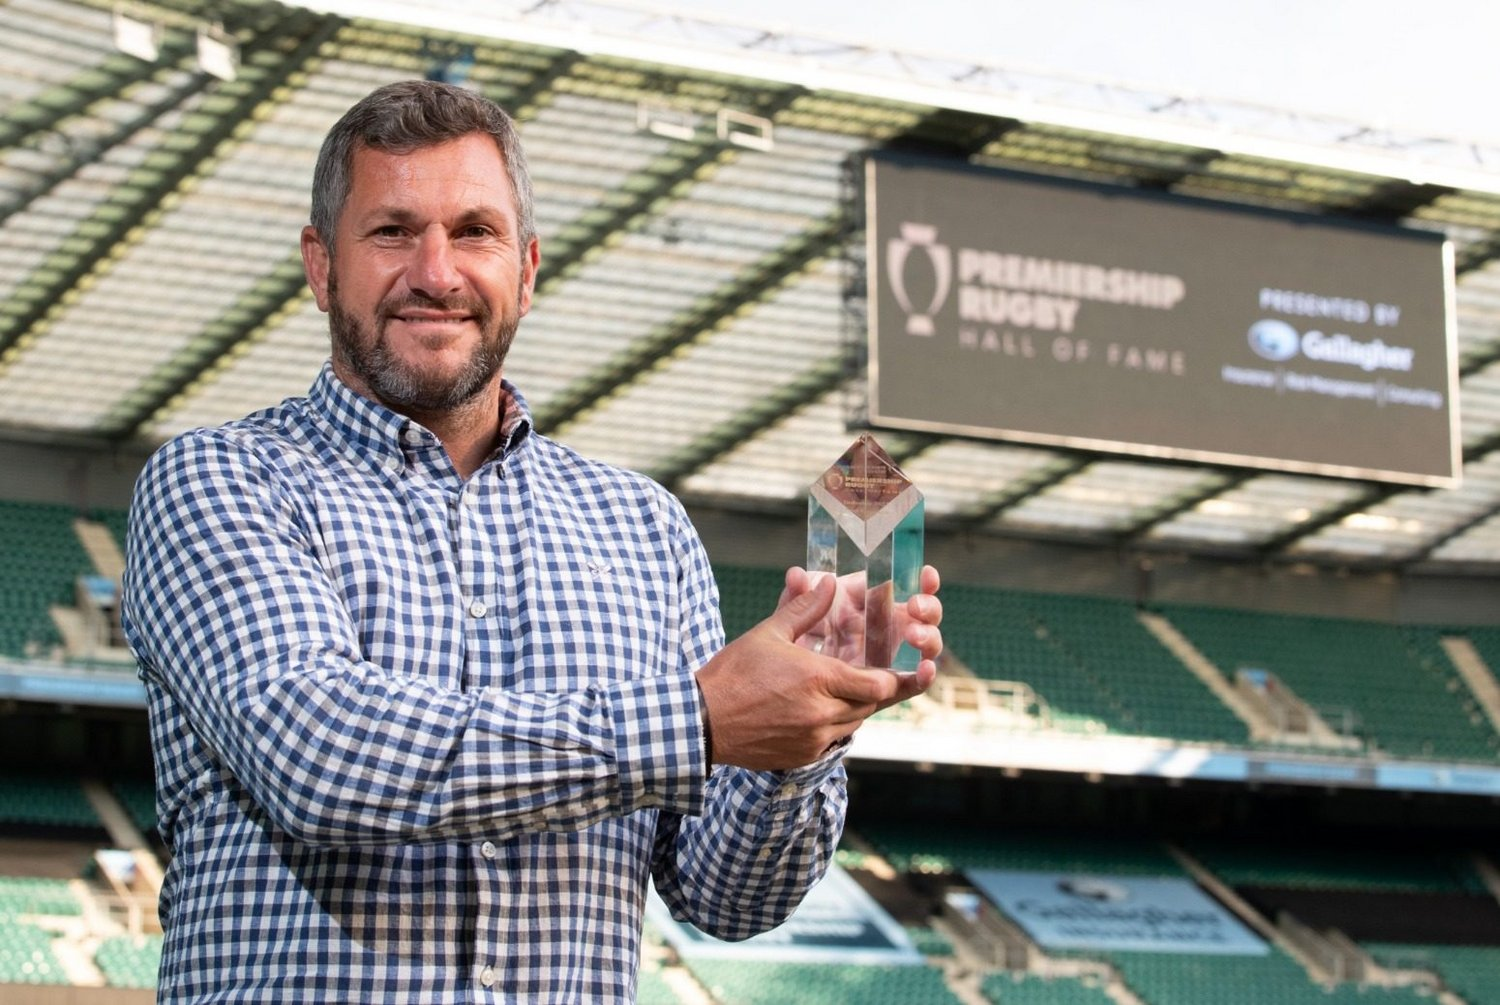 Former Saints fly-half Paul Grayson has been inducted into the Premiership Rugby Hall of Fame.